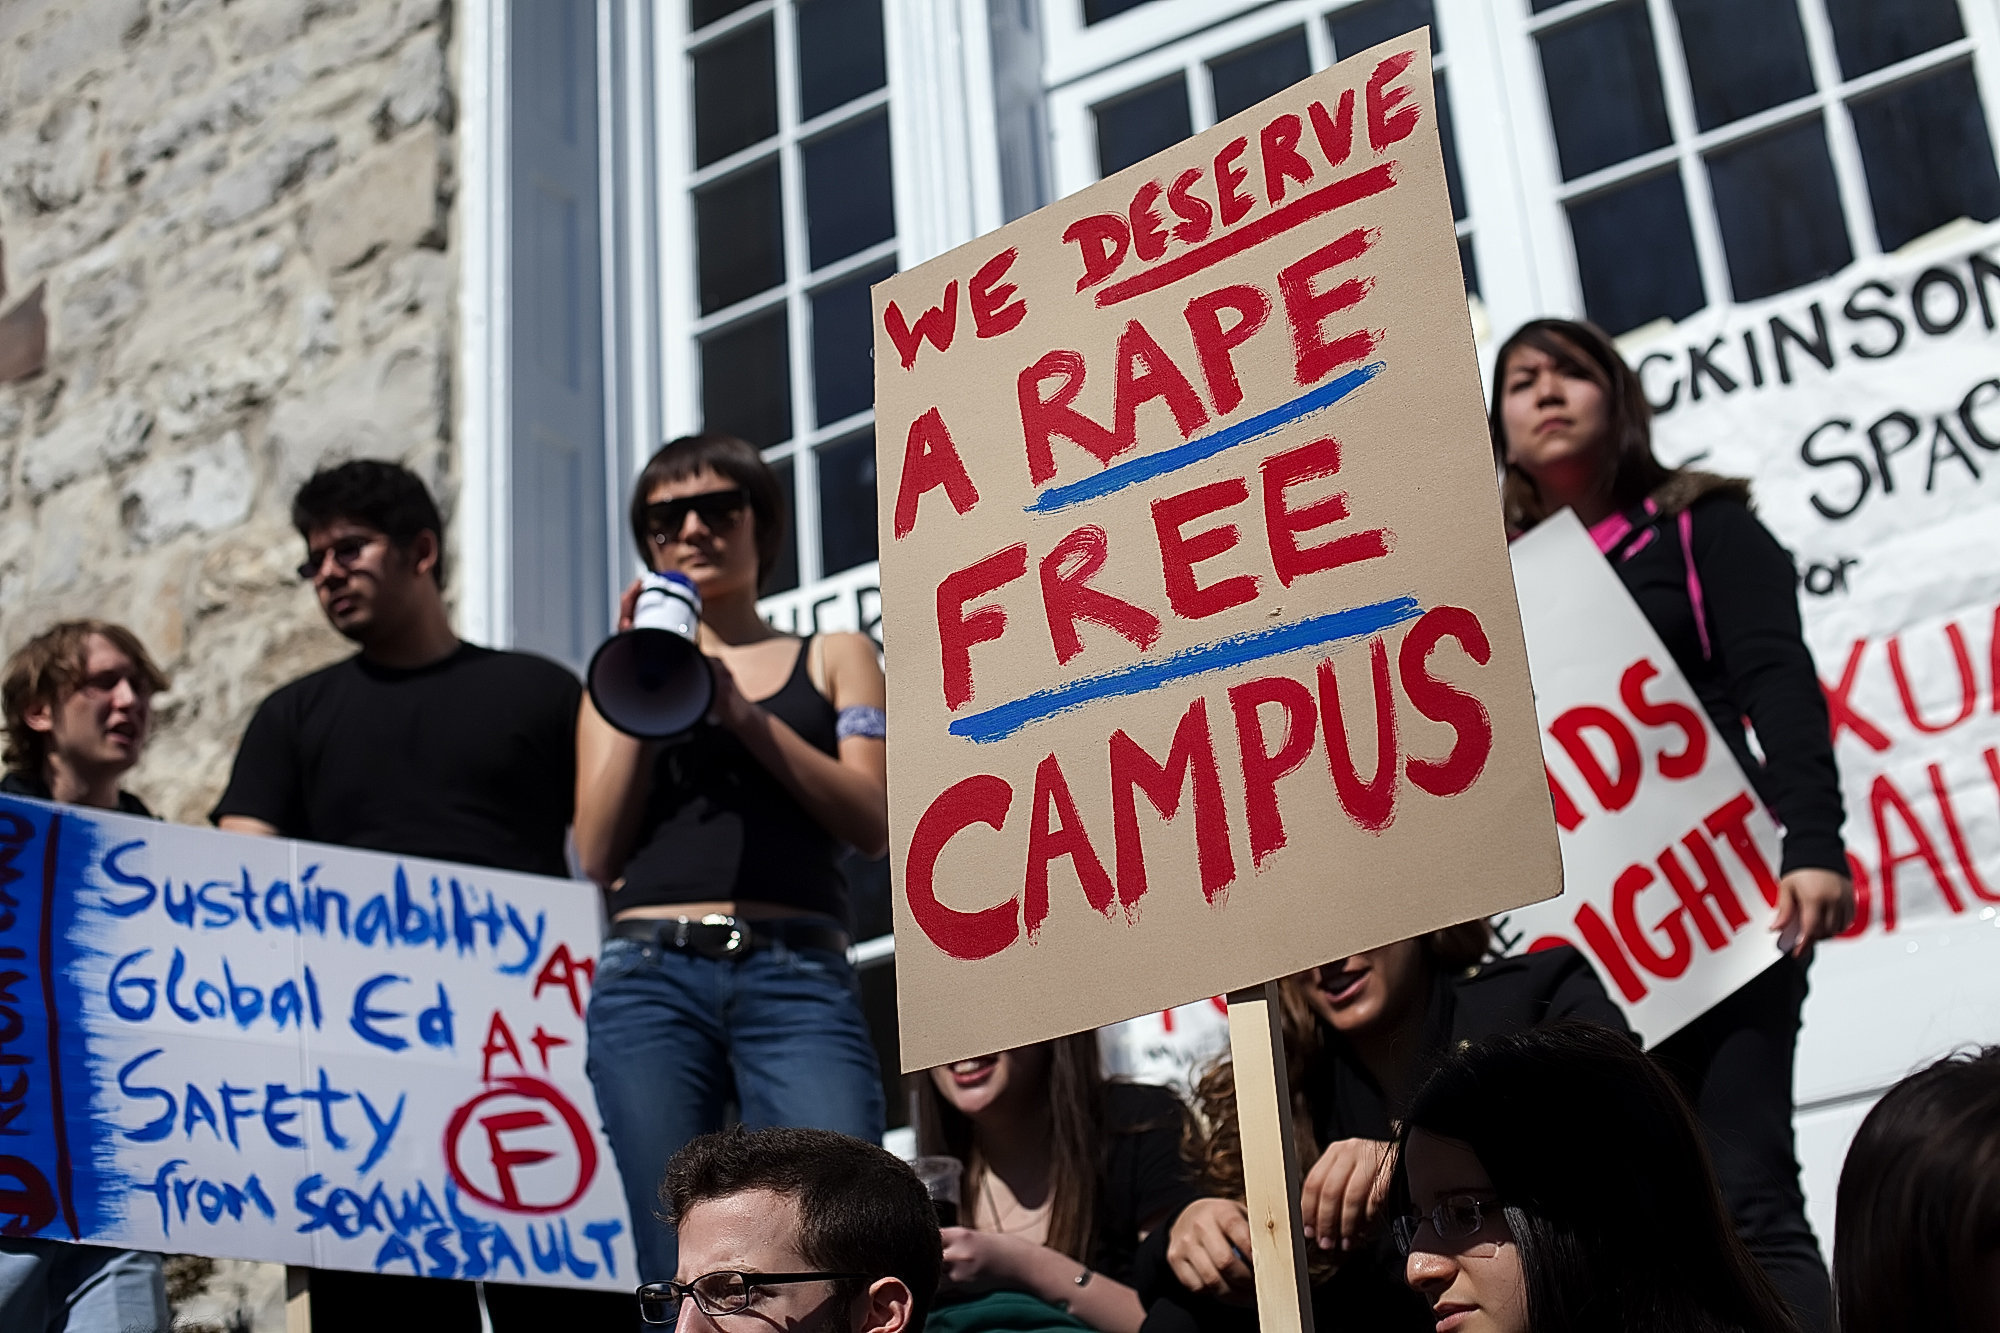 Students protest sexual assault on college campus